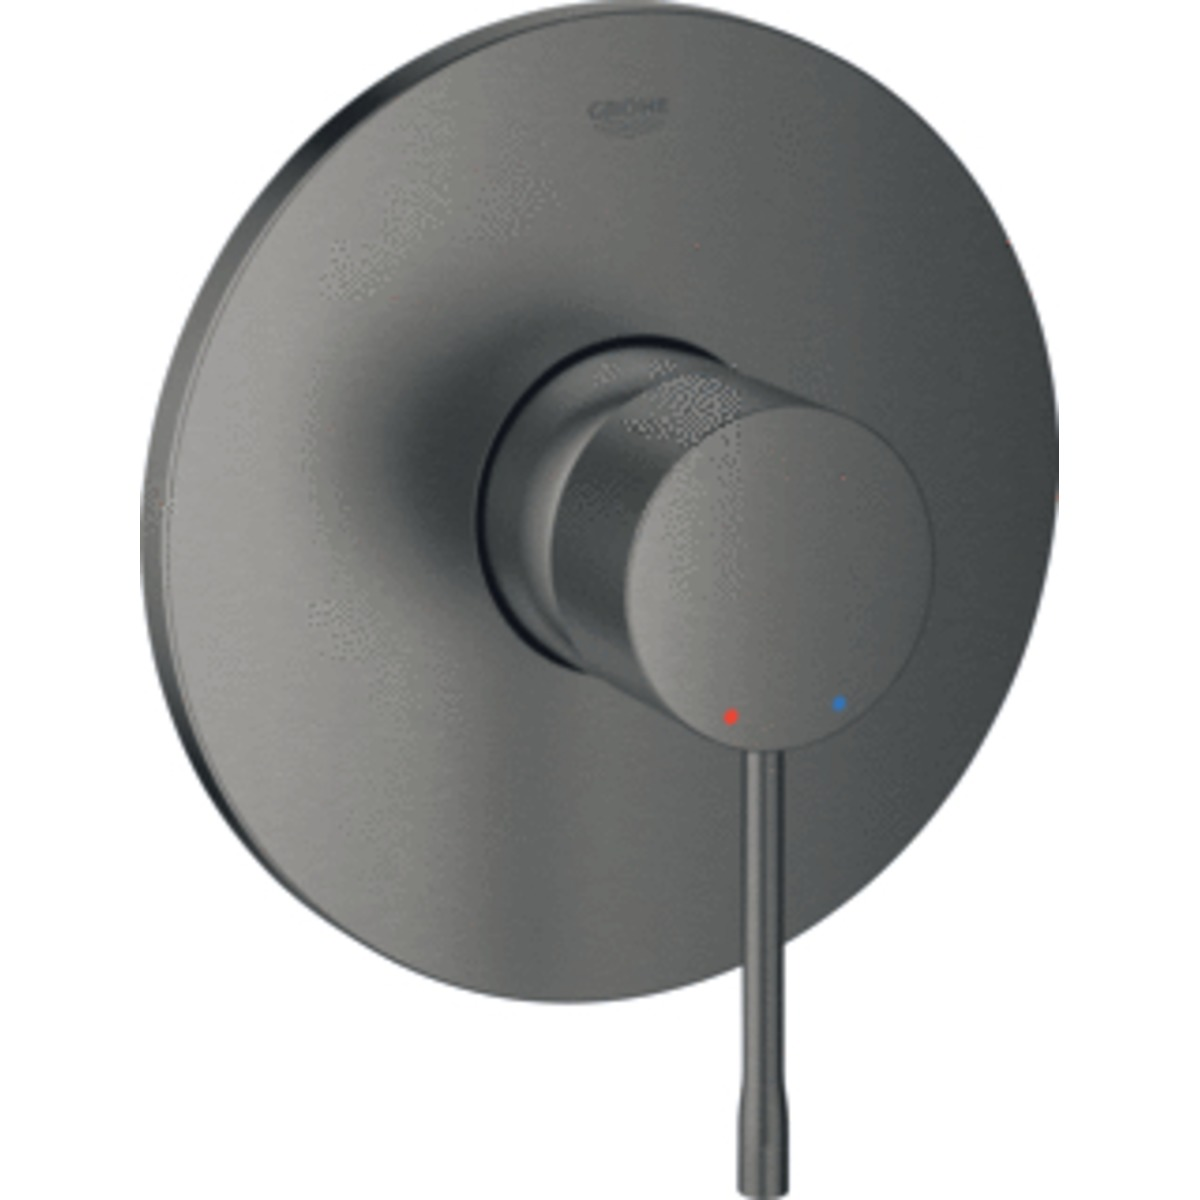 grohe essence new partie de finition mitigeur douche encastrable graphite dur bross 24057al1